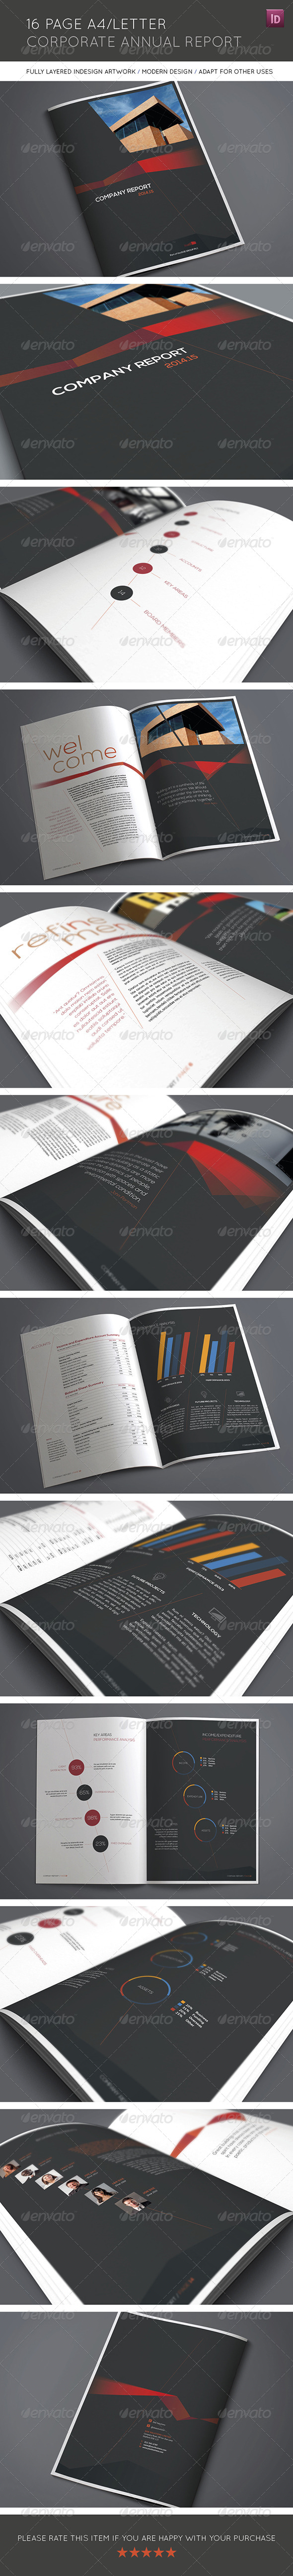 GraphicRiver 16 Page A4 Letter Corporate Annual Report 8145506